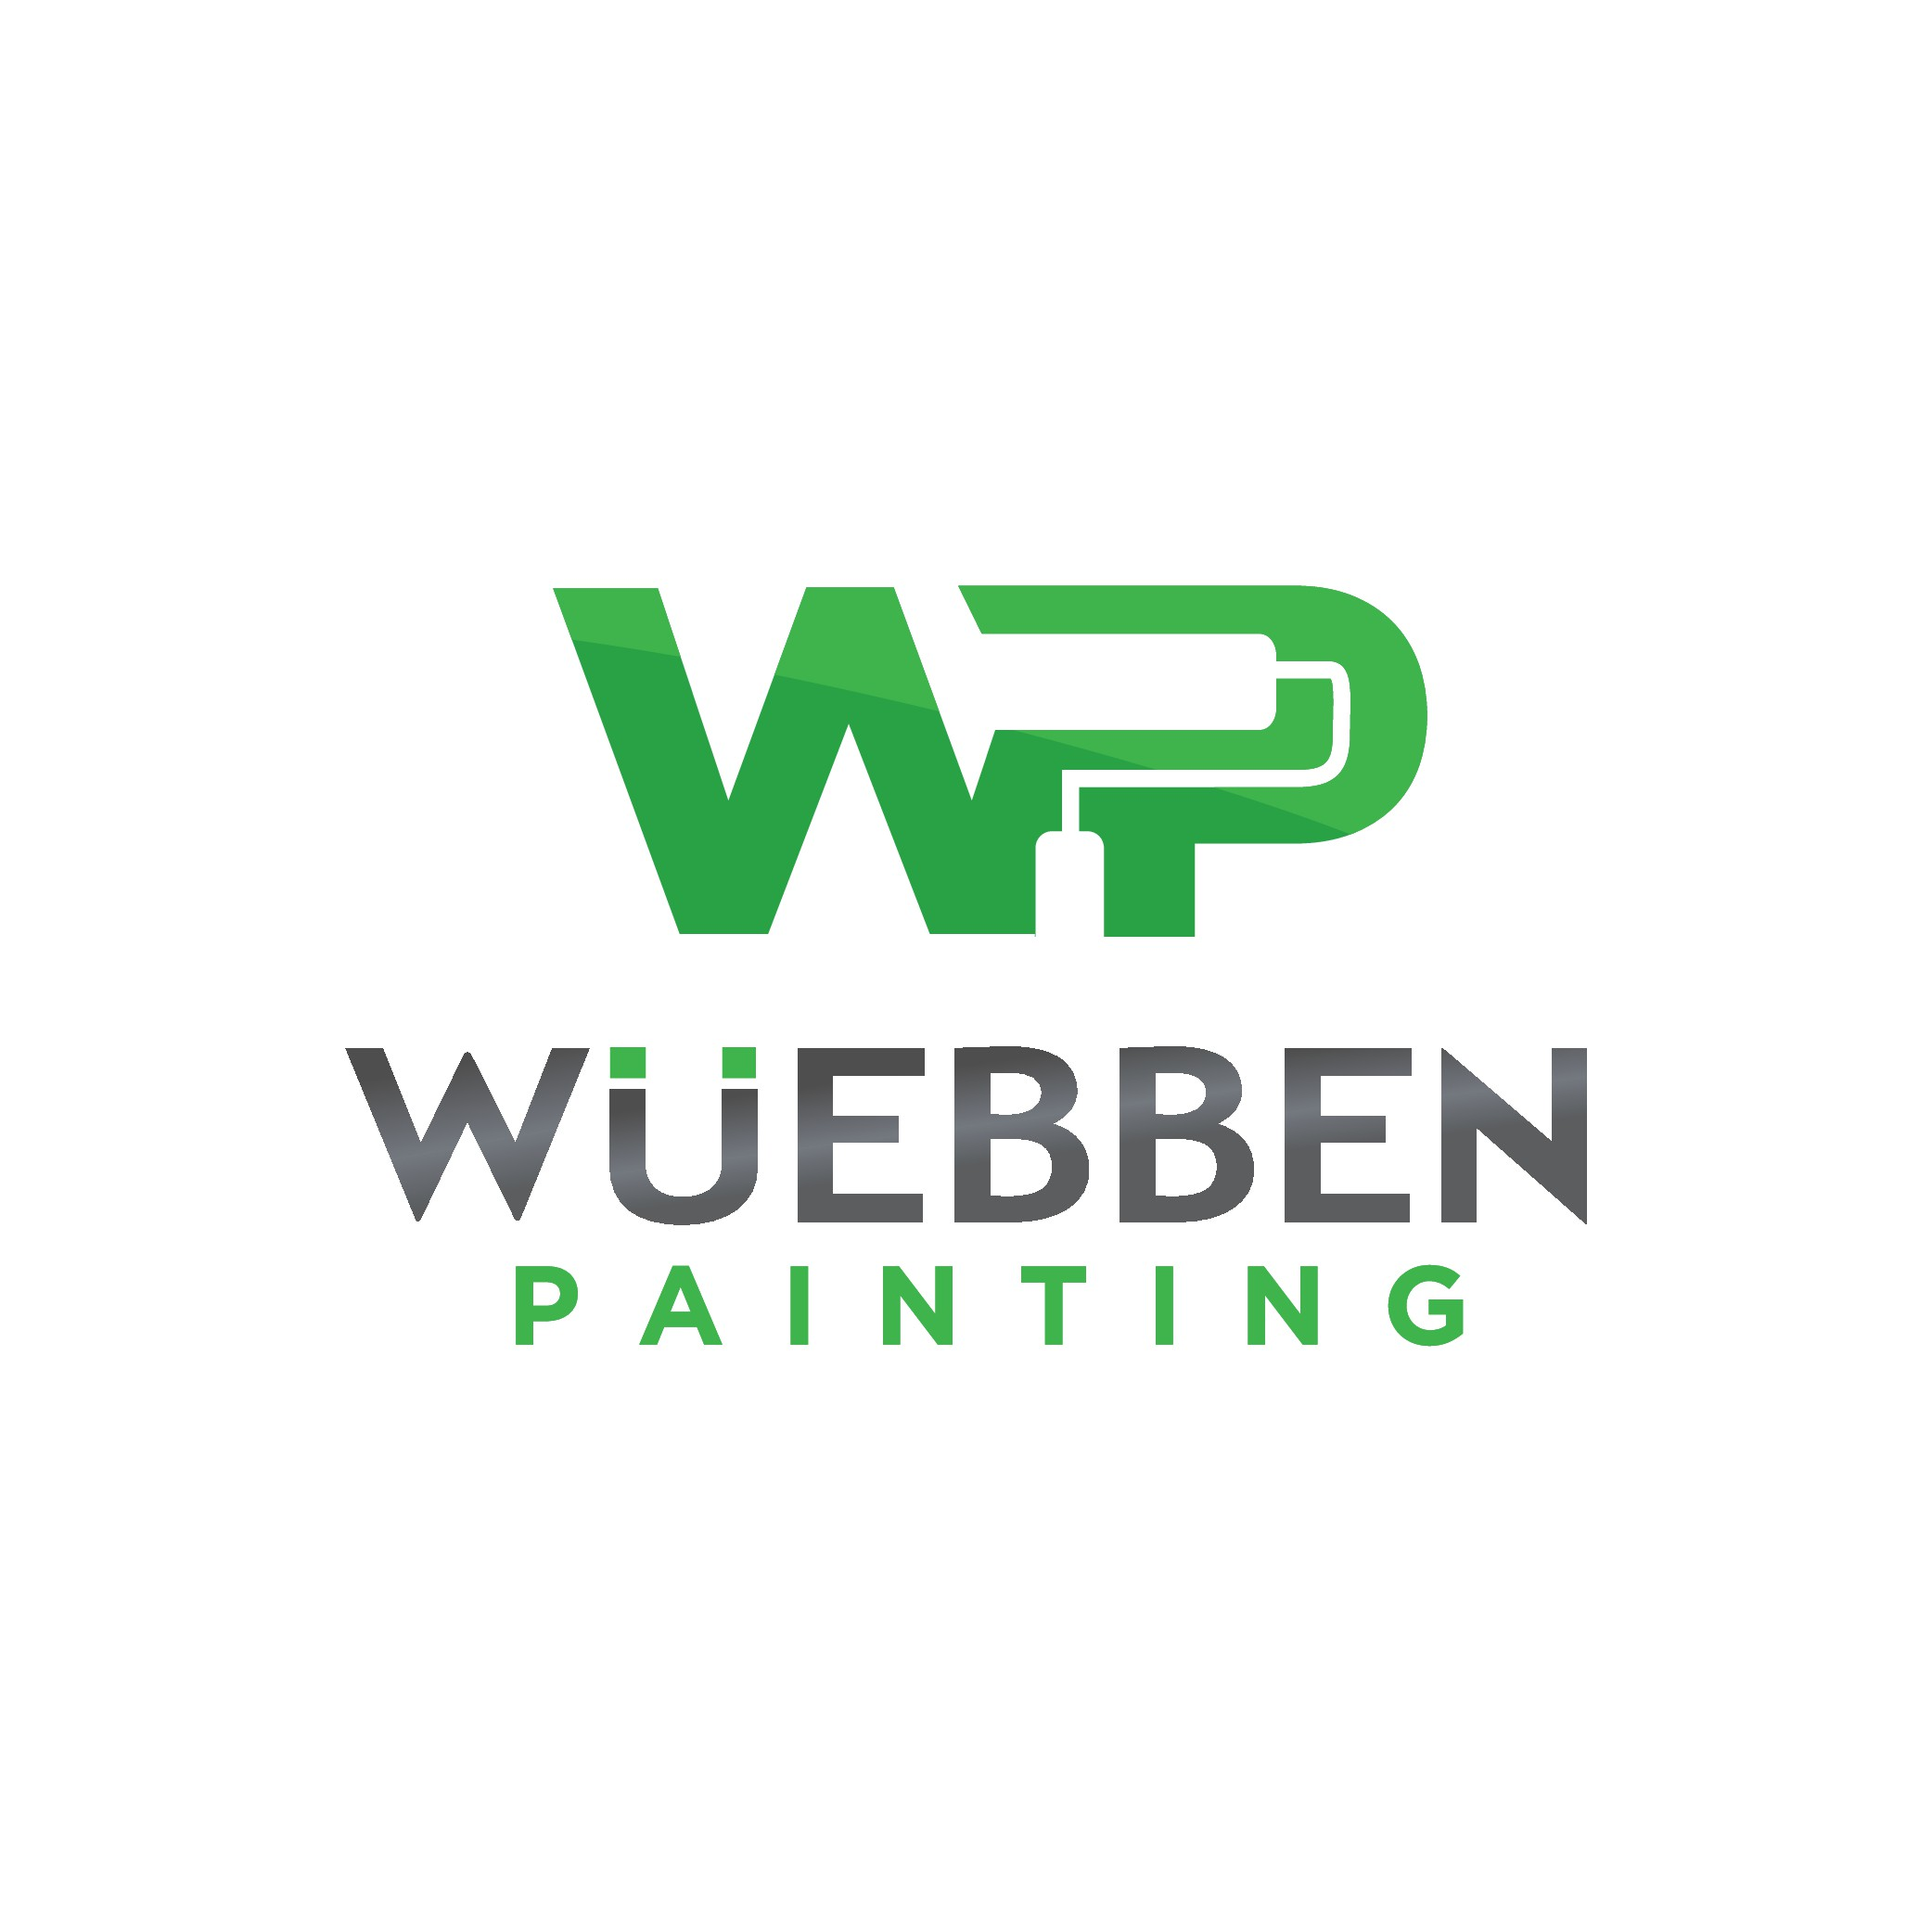 Design a sleek, modern logo for new painting contractor, maybe incorporate a spray gun or tape being pulled to reveal lo